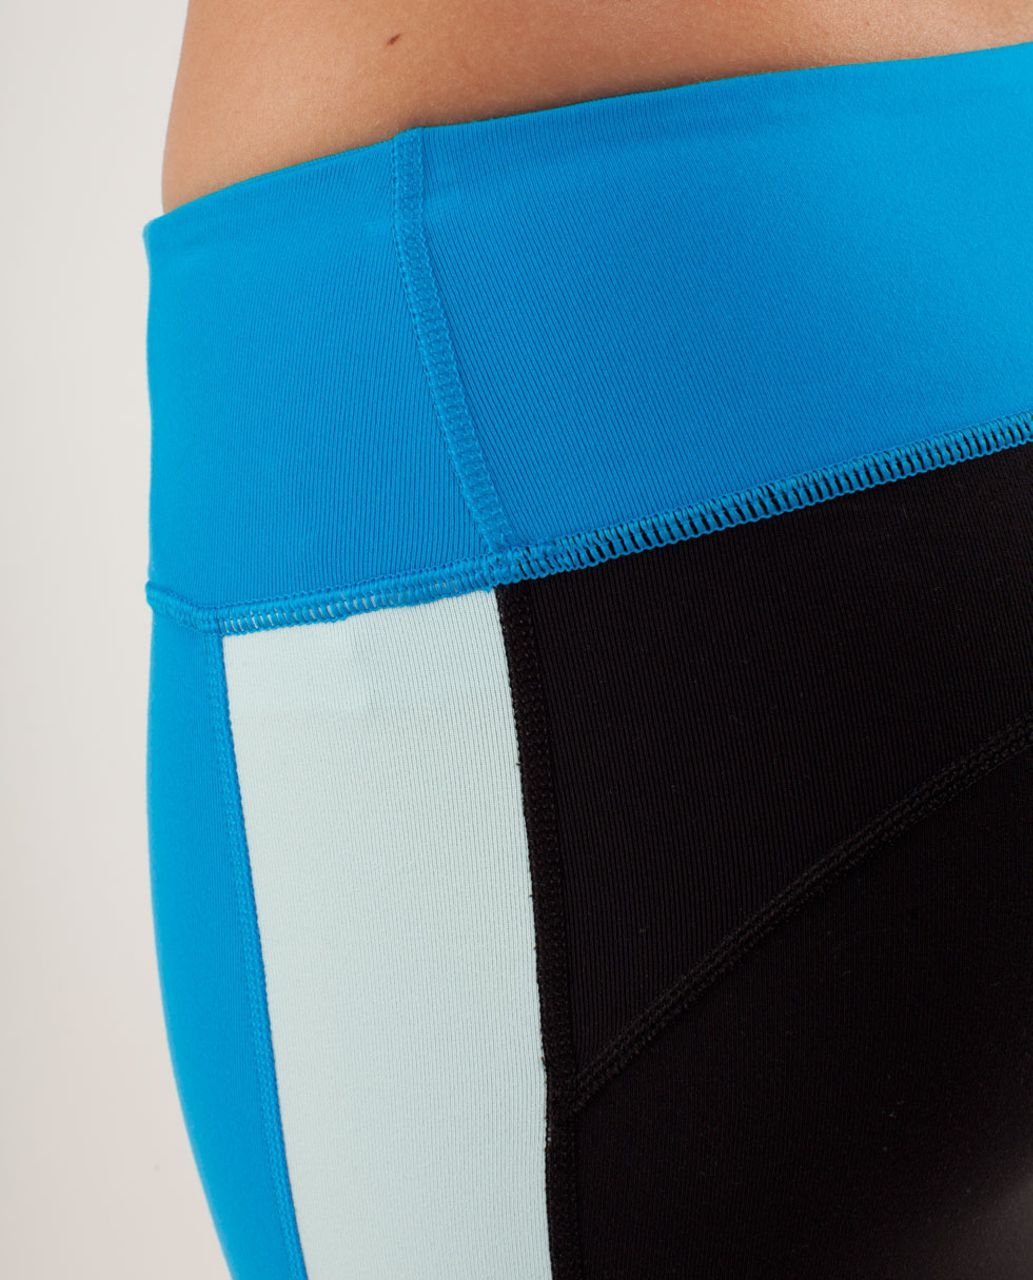 Lululemon Compass Pant 7/8 - Beach Blanket Blue / Aquamarine / Black